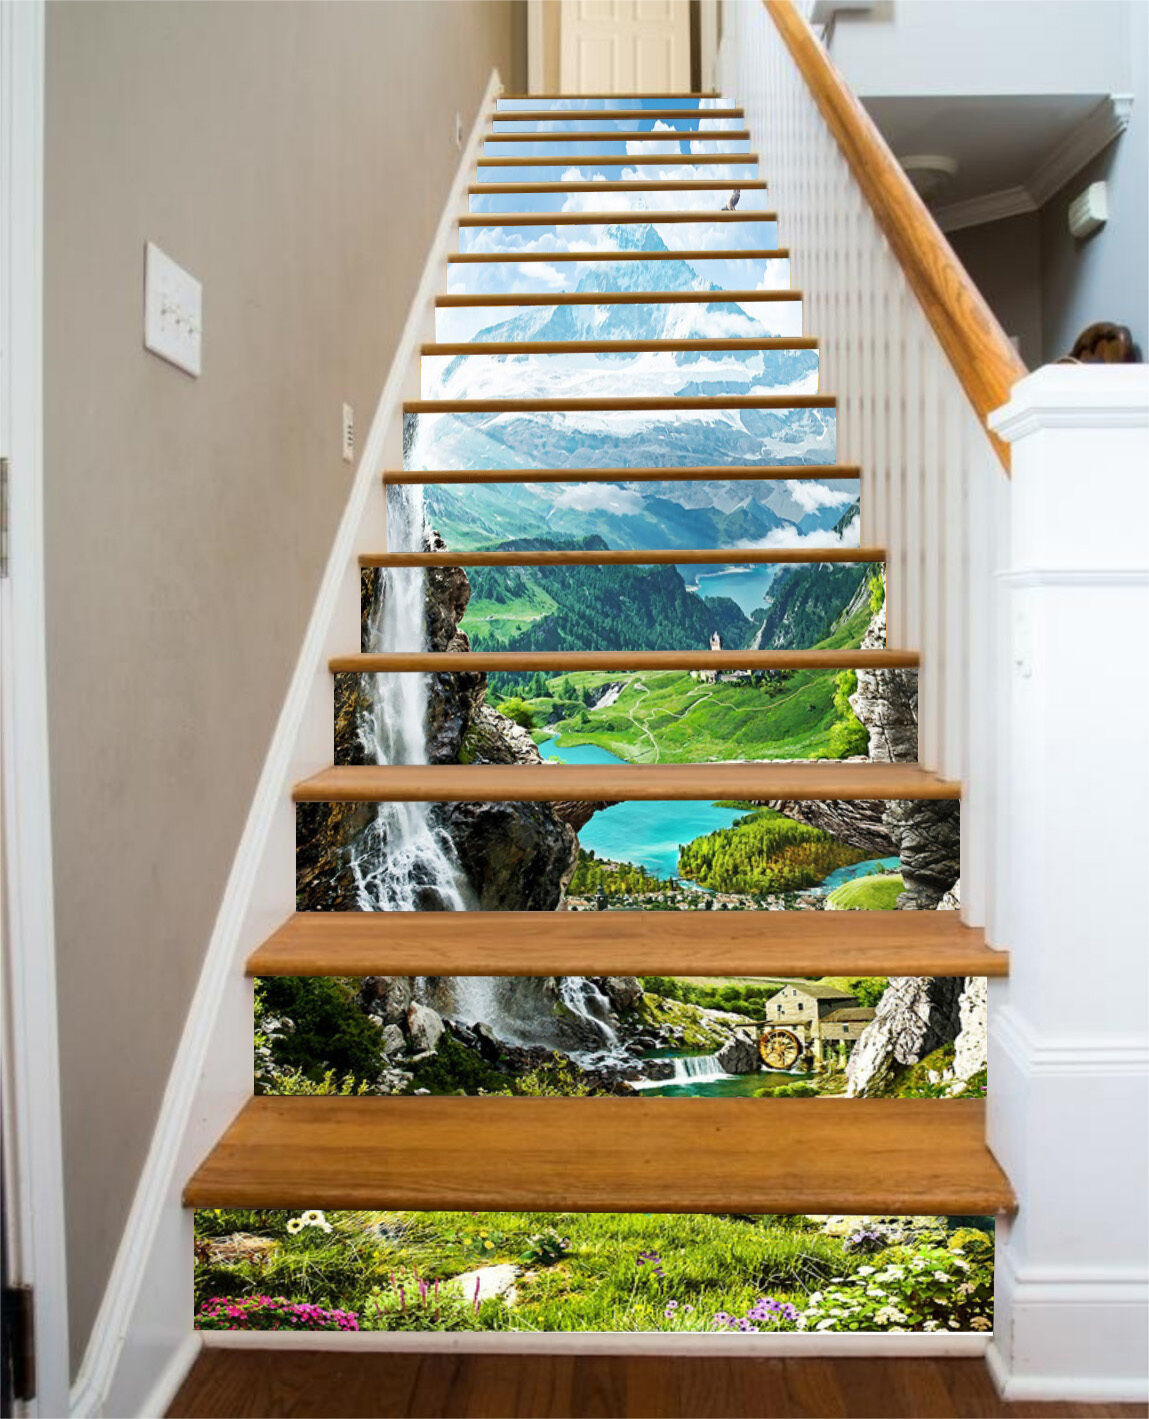 3D Landscape sky 6 Stair Risers Decoration Photo Mural Vinyl Decal Wallpaper UK